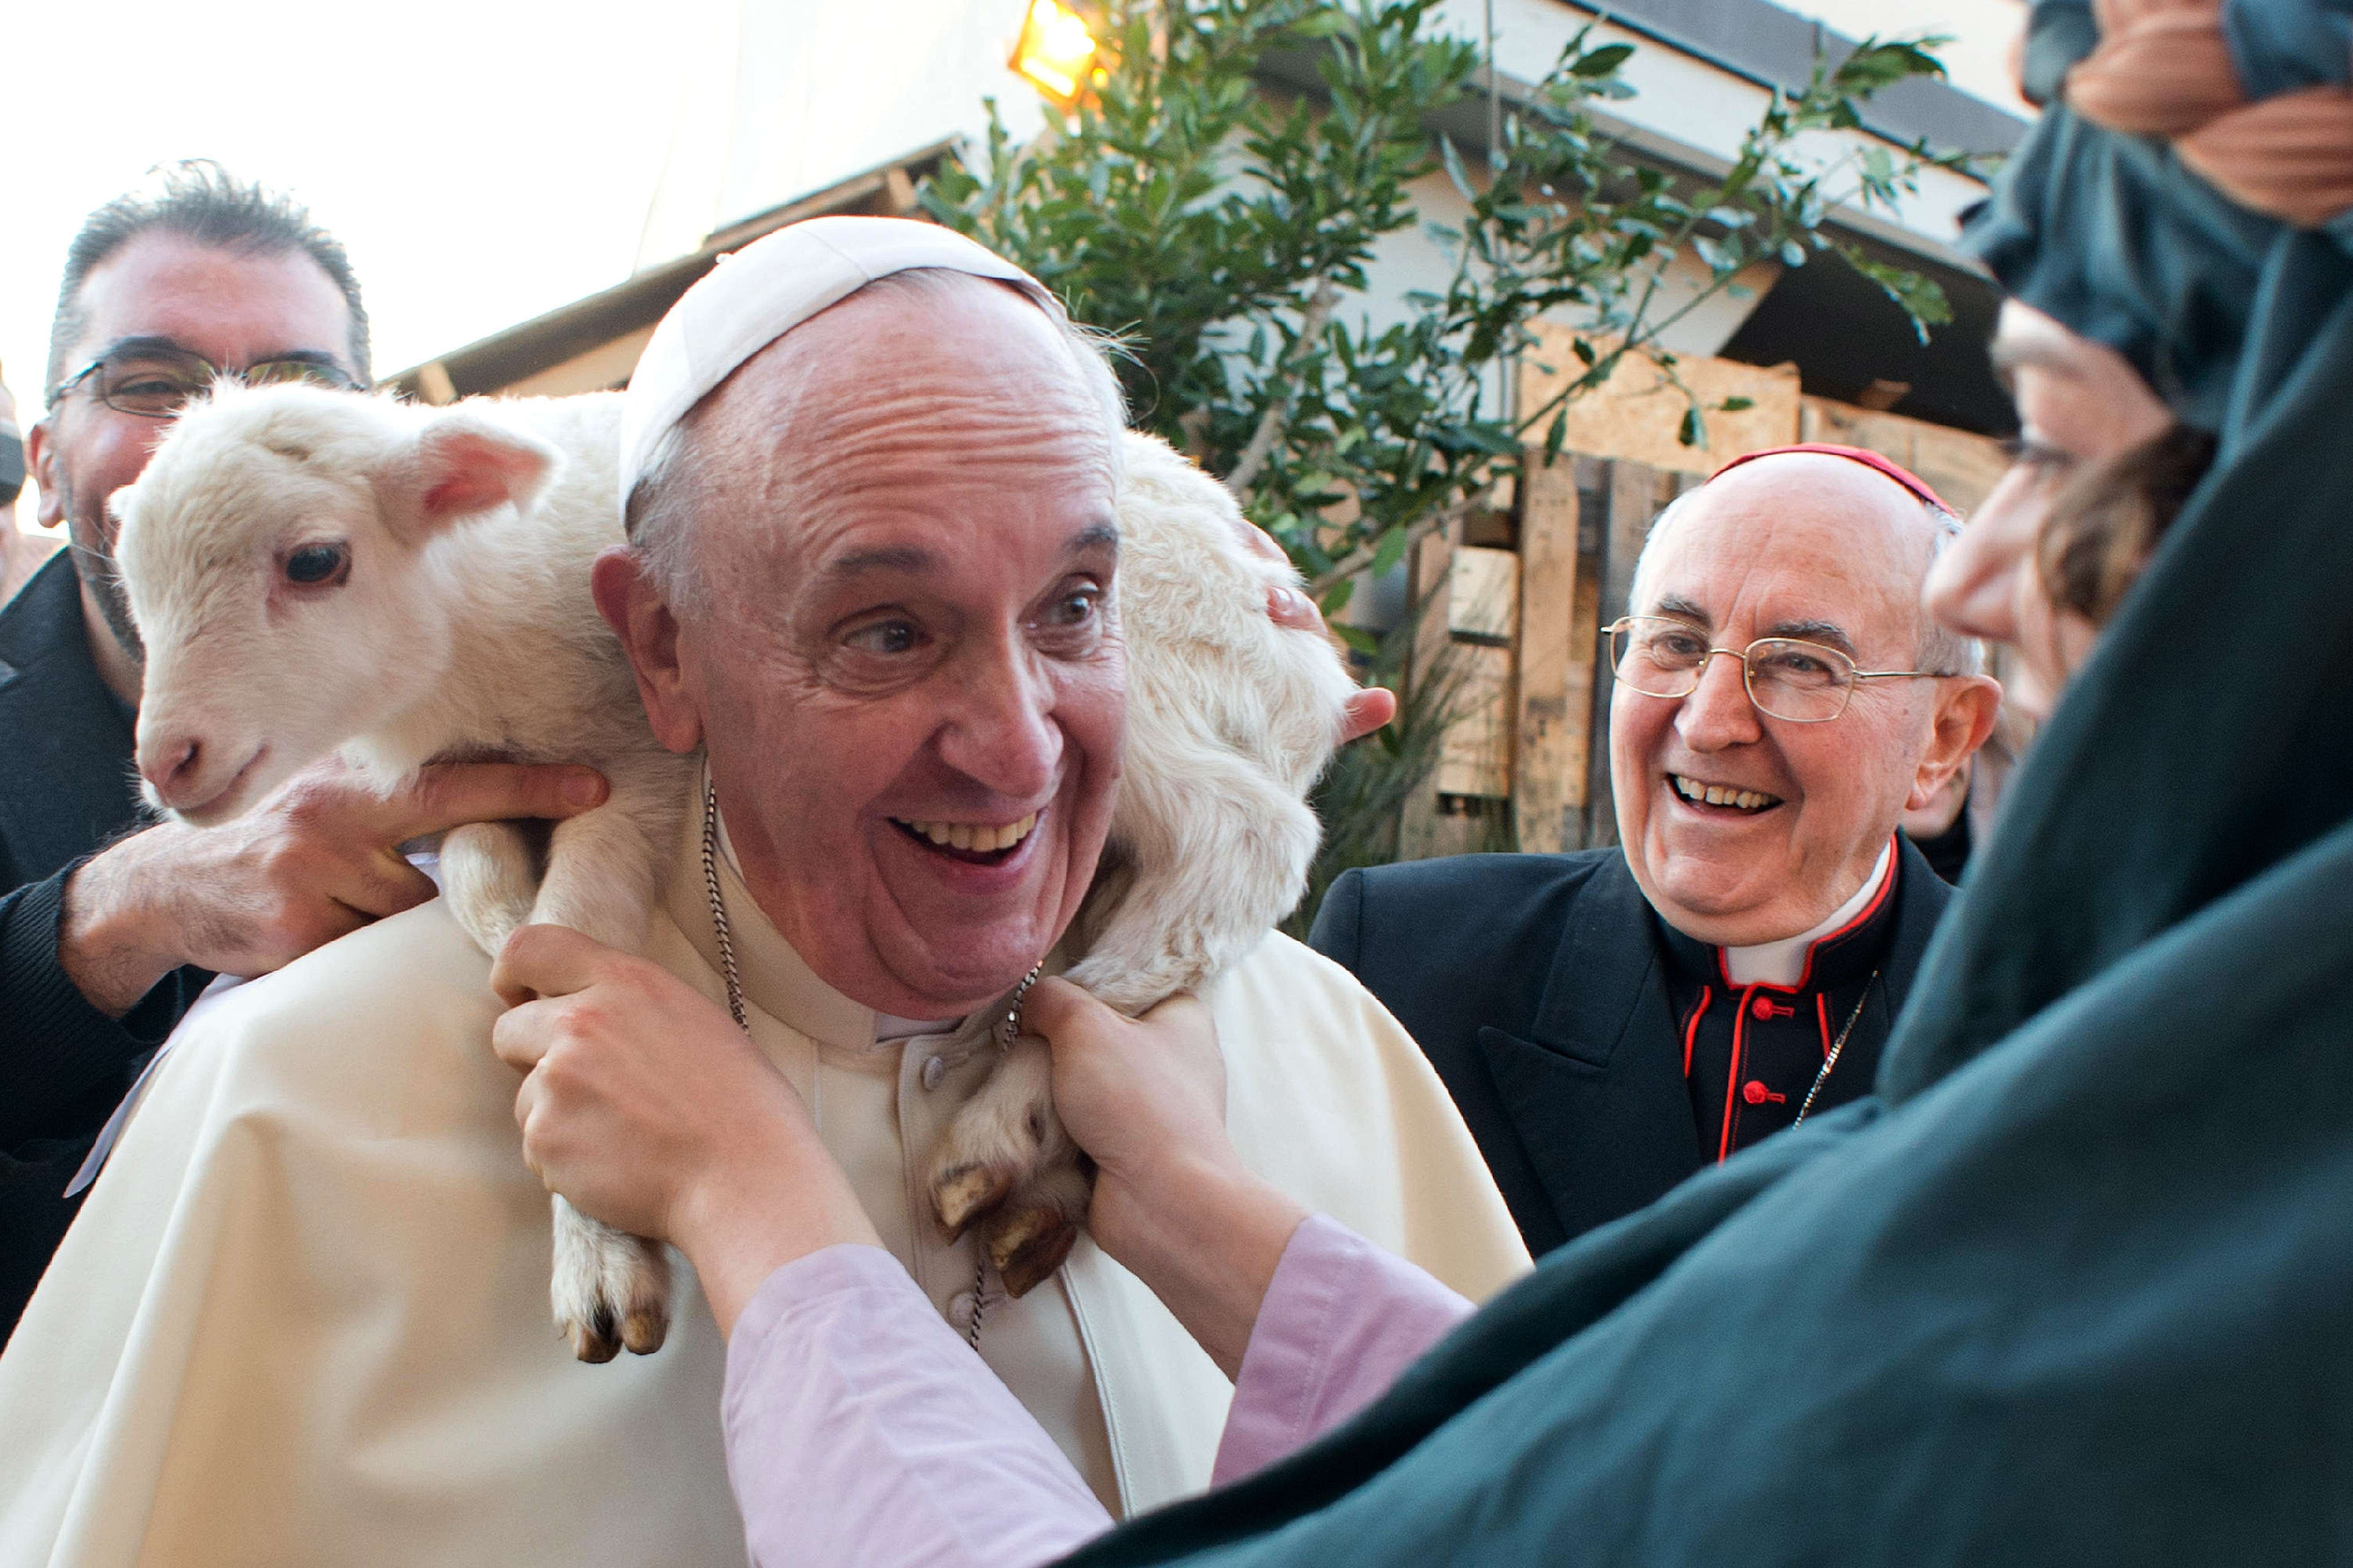 This handout picture released on Jan. 6, 2014 by the Vatican press office shows Pope Francis carrying a lamb on his shoulders as he visits the parish of the Sant'Alfonso Maria de Liguori during Epiphany in Rome.